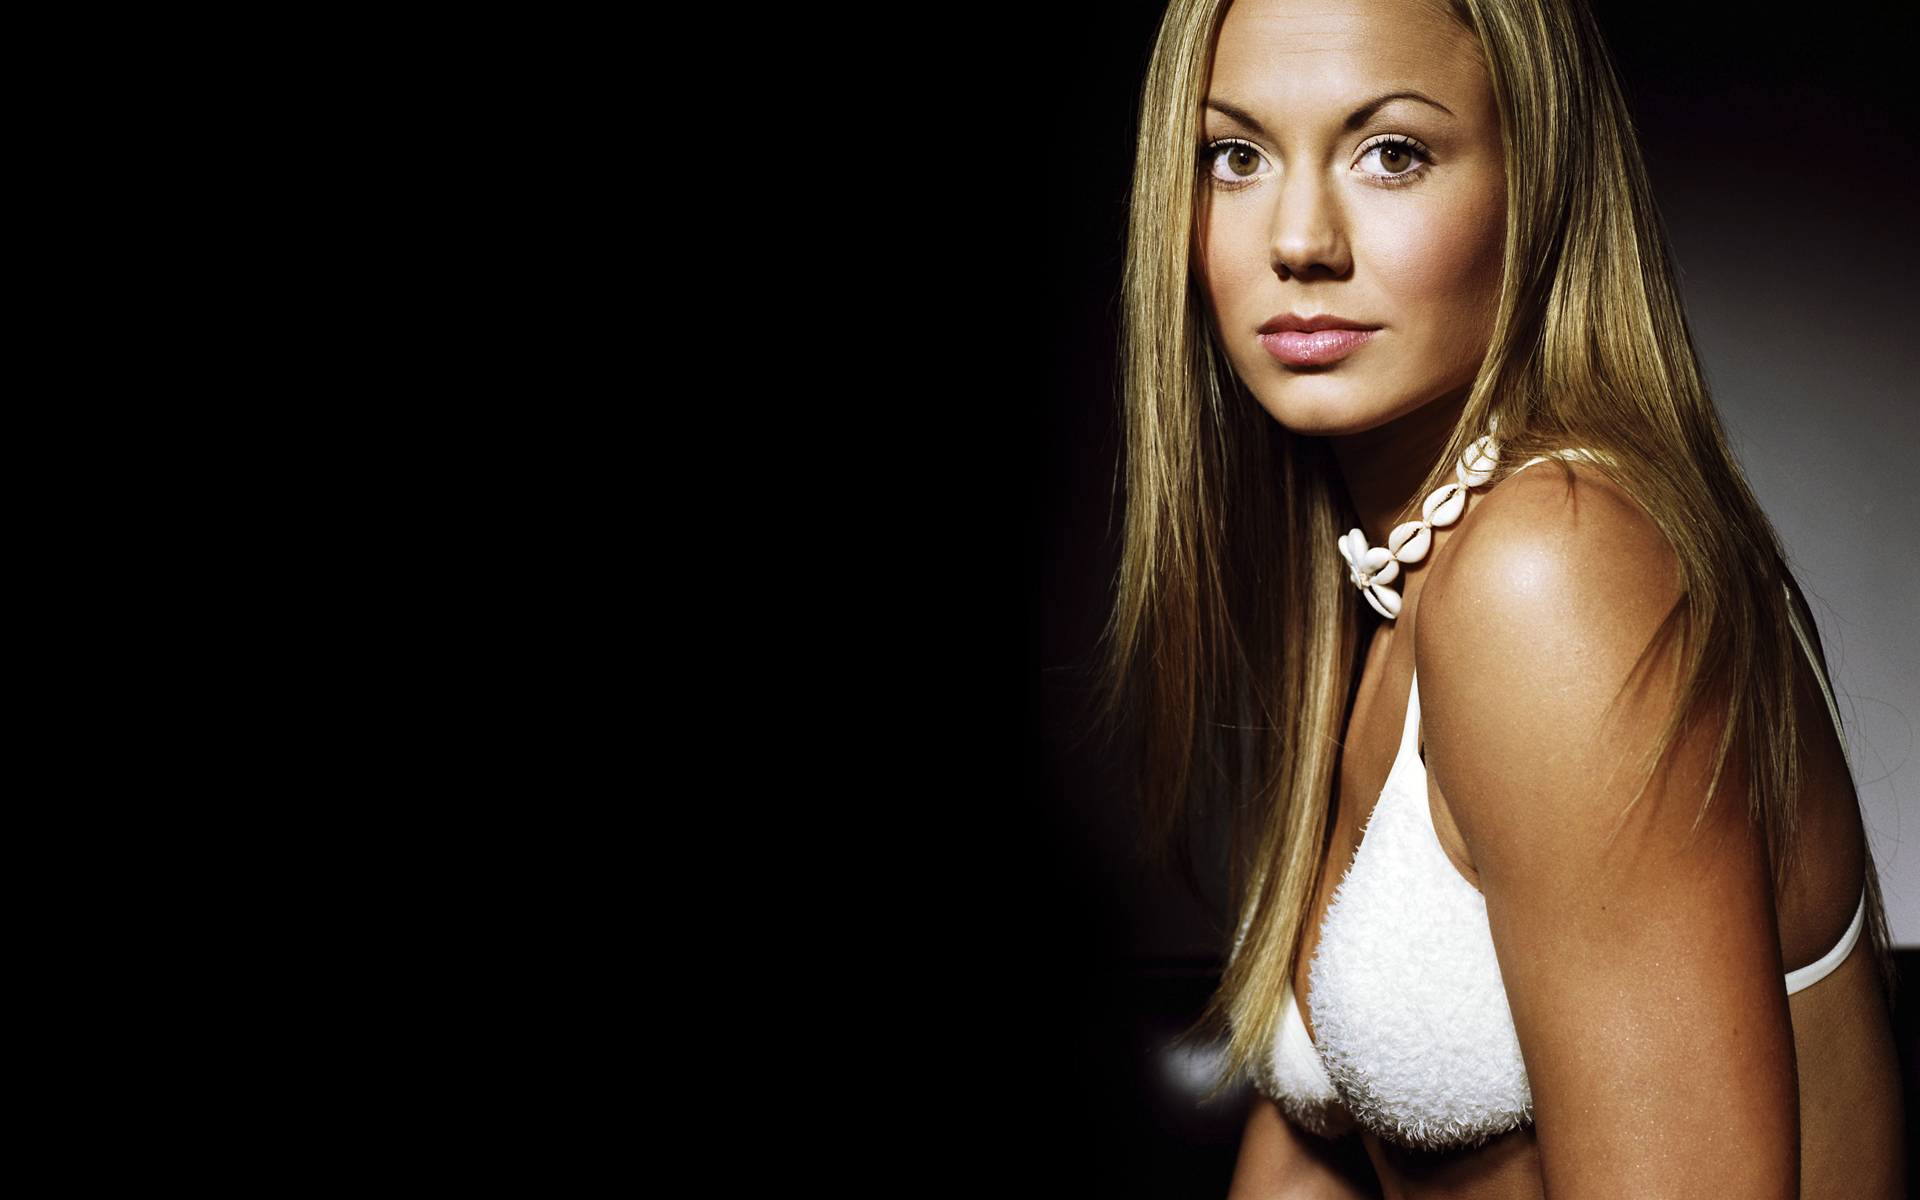 stacy keibler 1440x900 wallpapers - photo #15